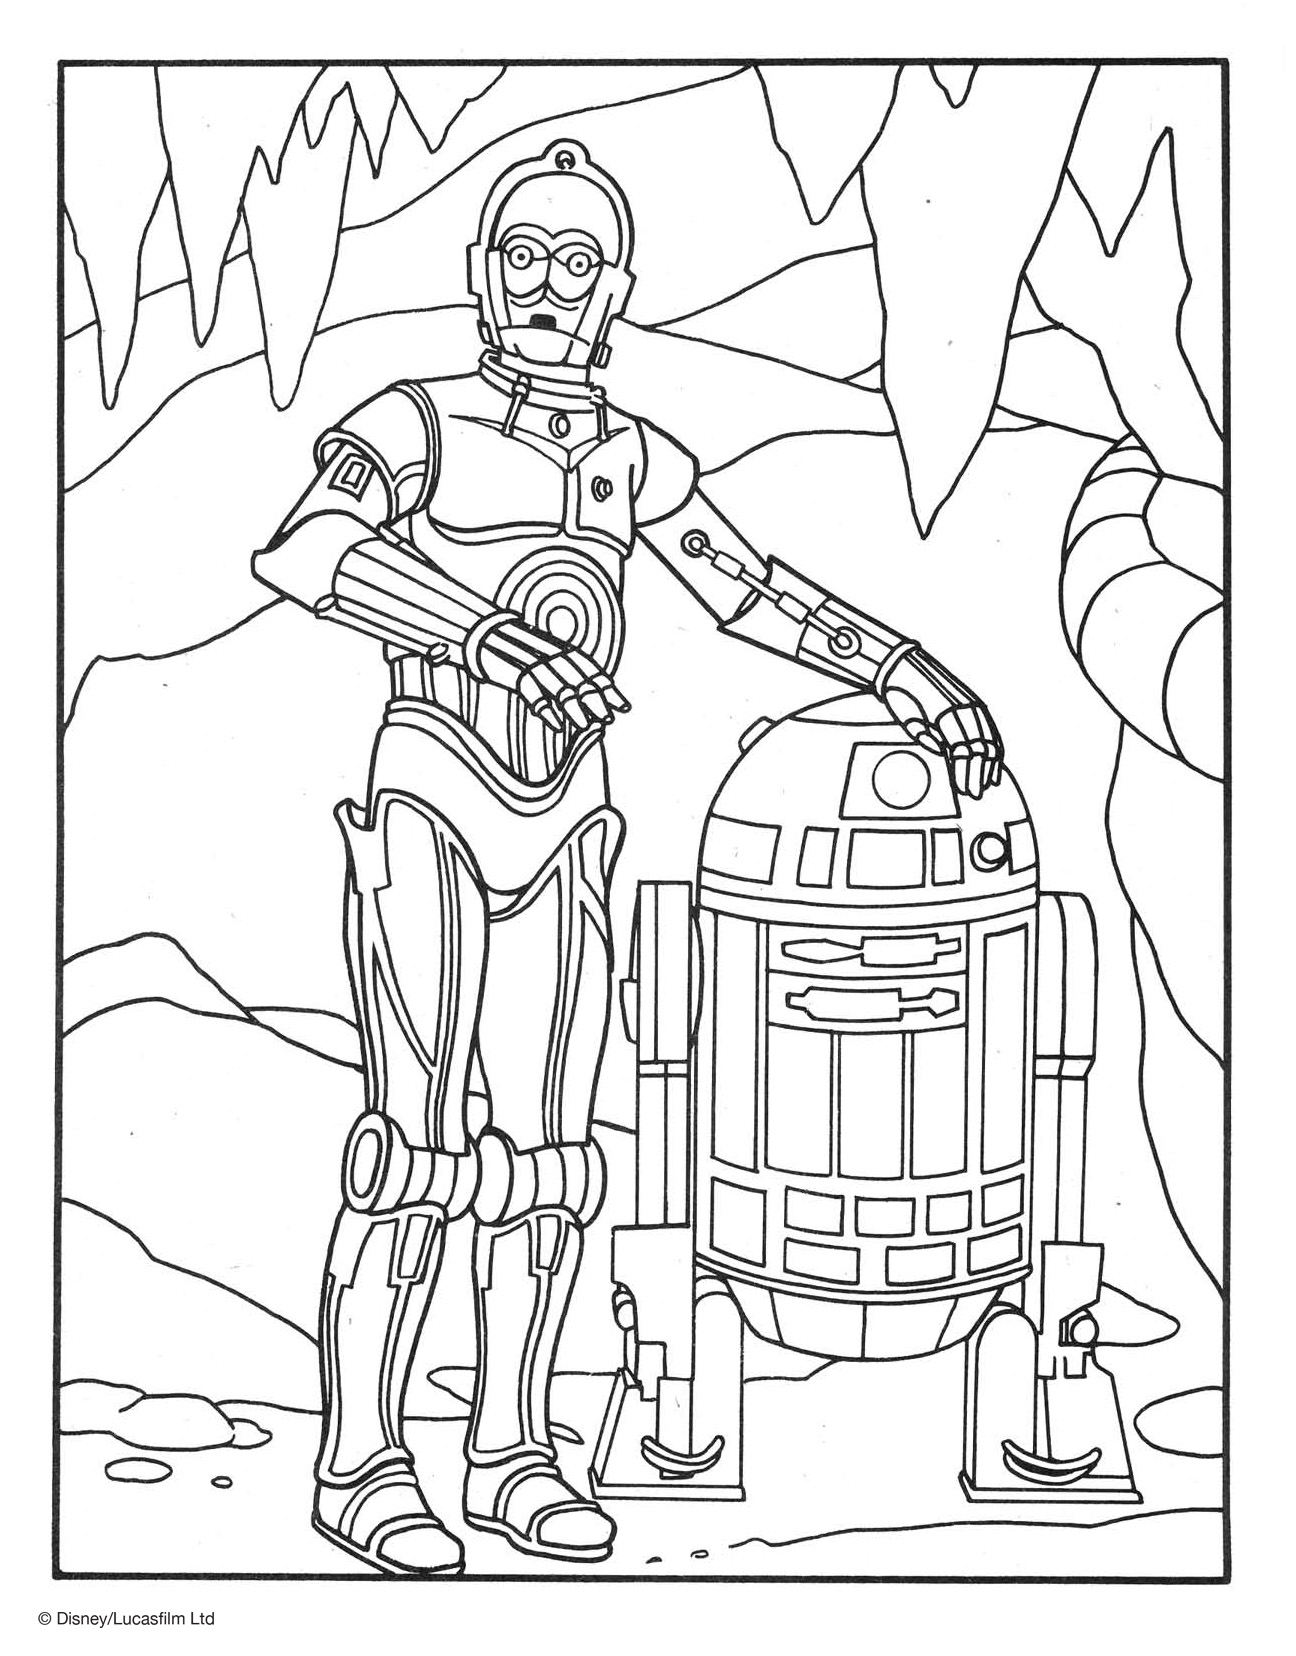 R2-D2 and C-3PO Coloring Page | Disney Family